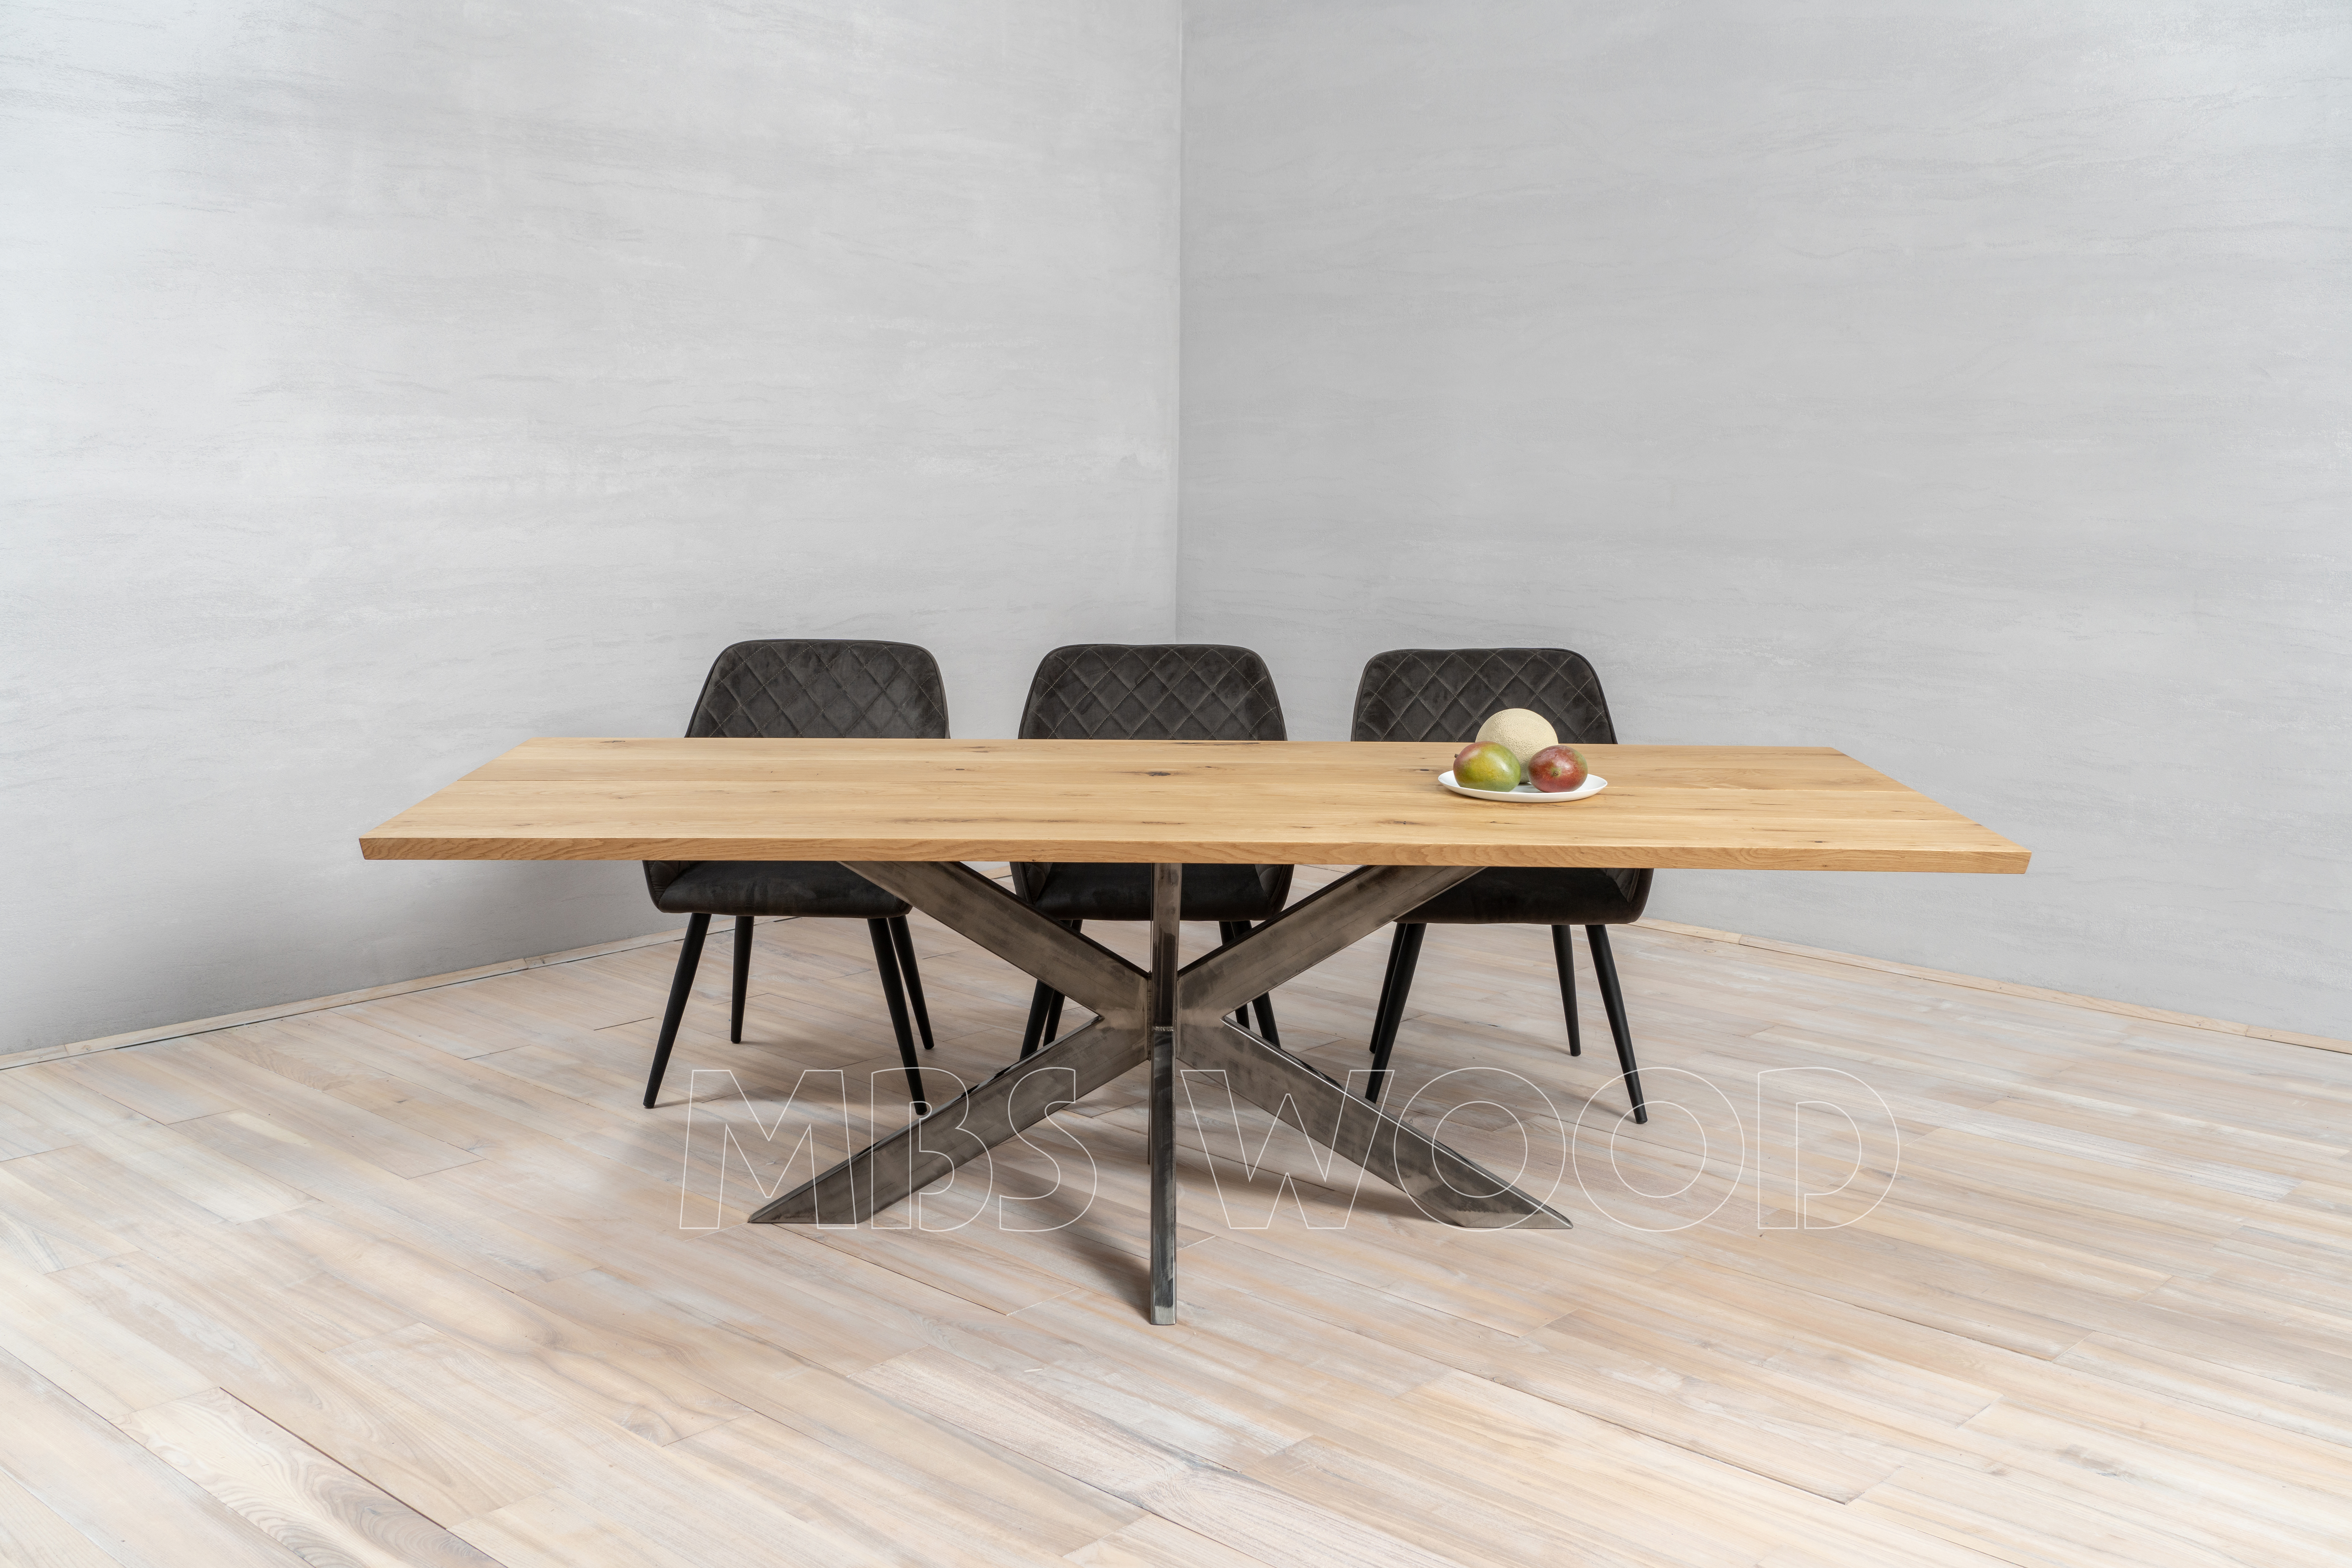 Oak tables with metal legs spider